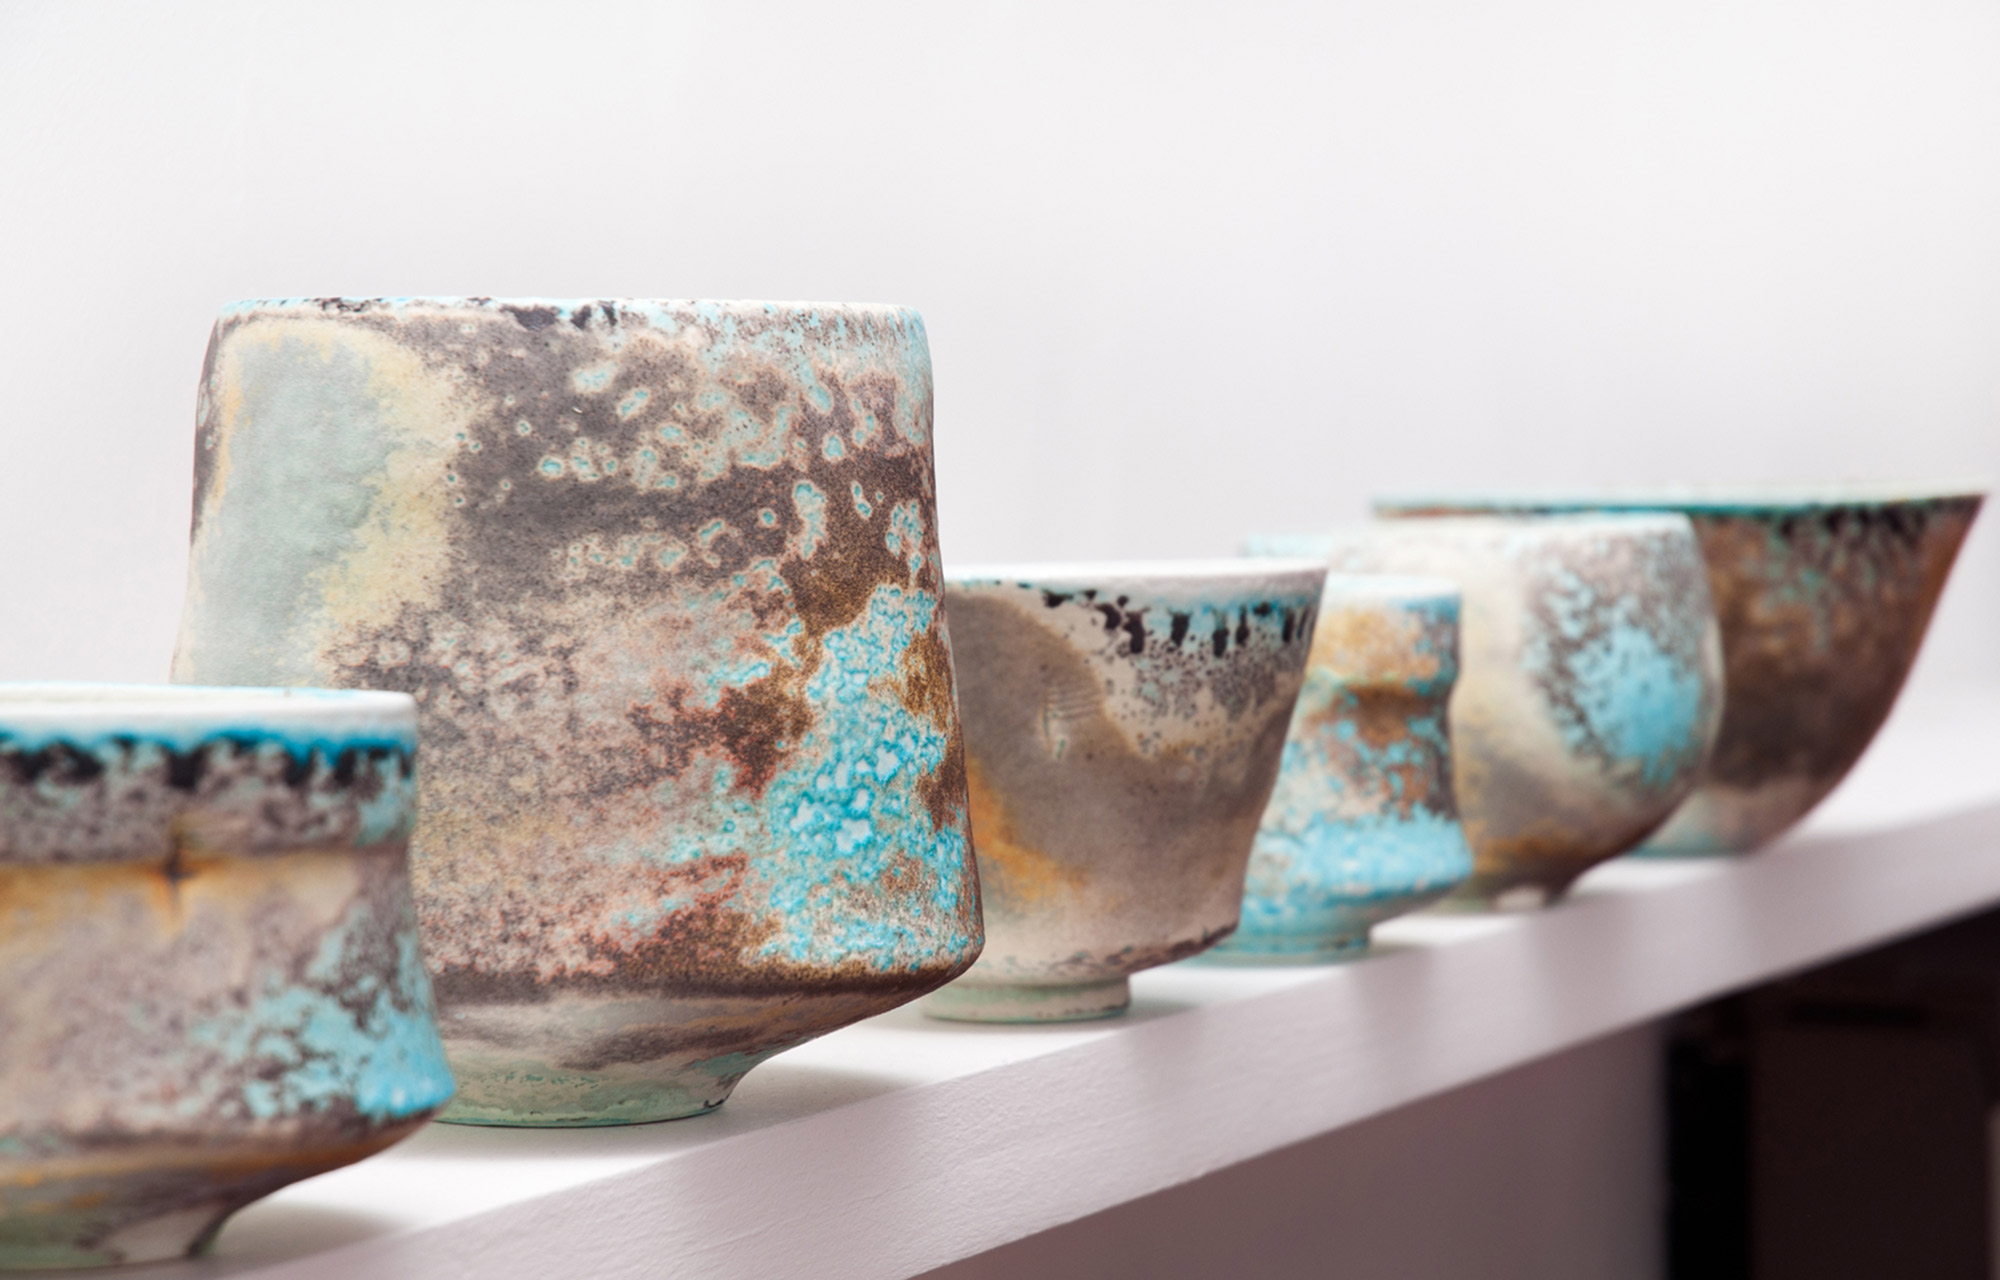 doherty-porcelain-a2_mdba_mdby_ceramic_vessels_manufactured_sodafiring_jack_doherty.jpg